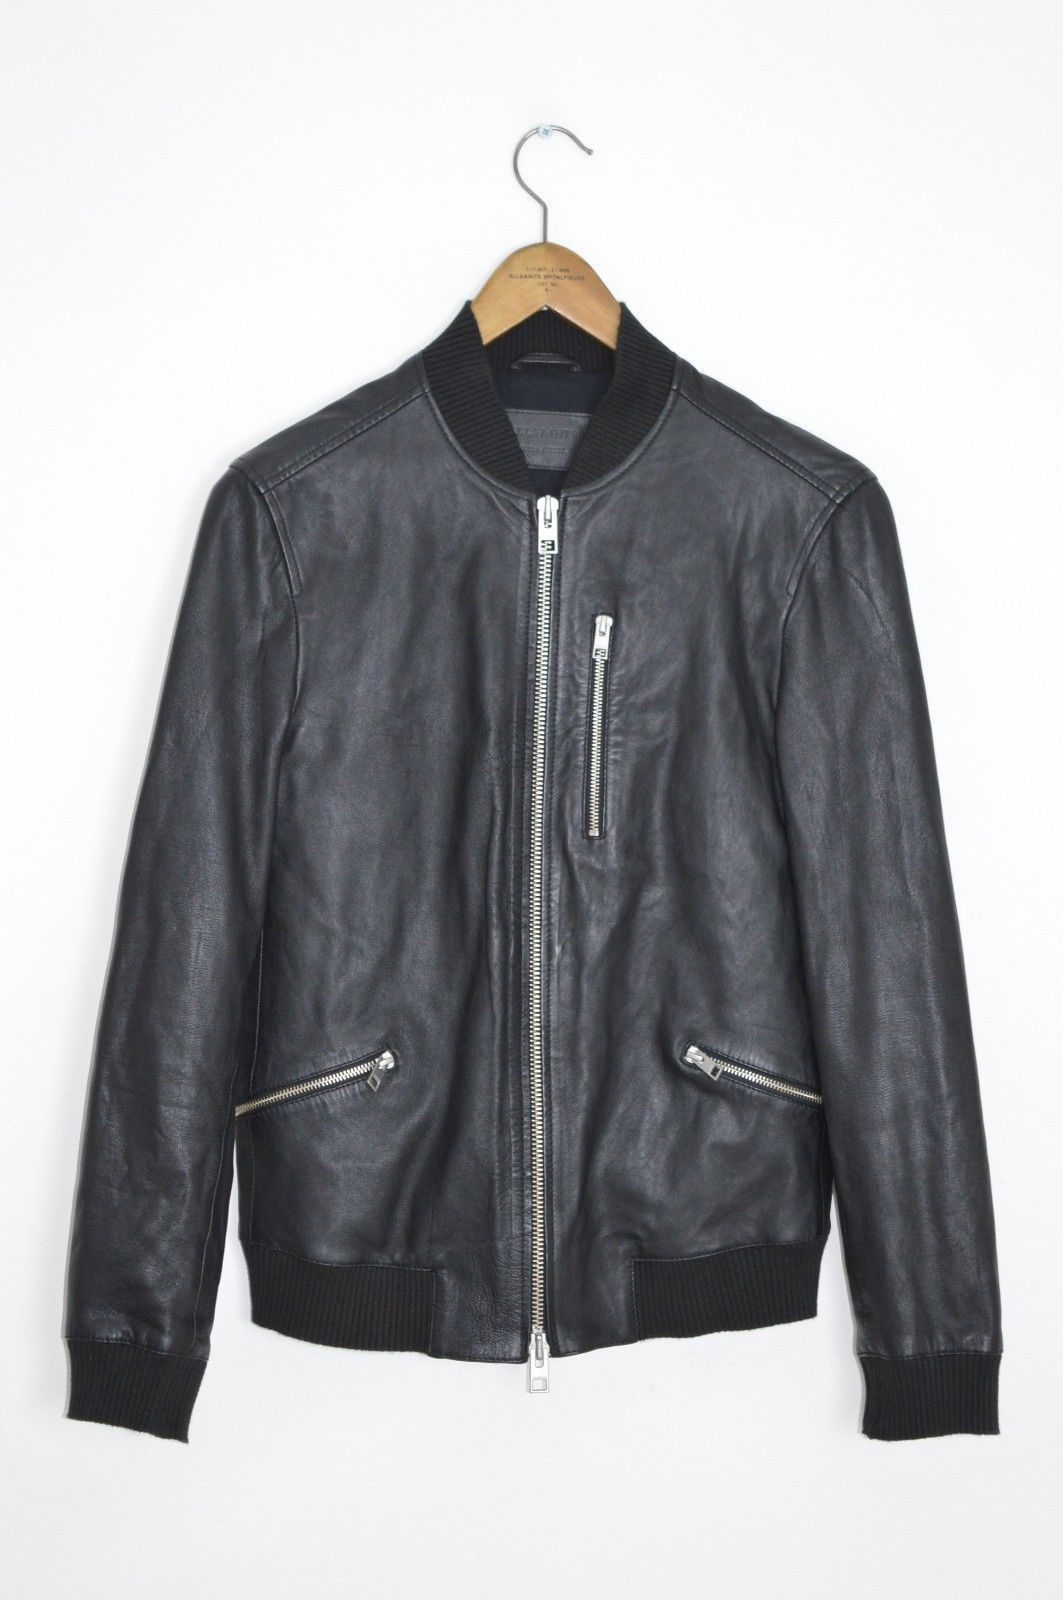 AWESOME SAUCE XS AllSaints Mens UTILITY Leather Bomber